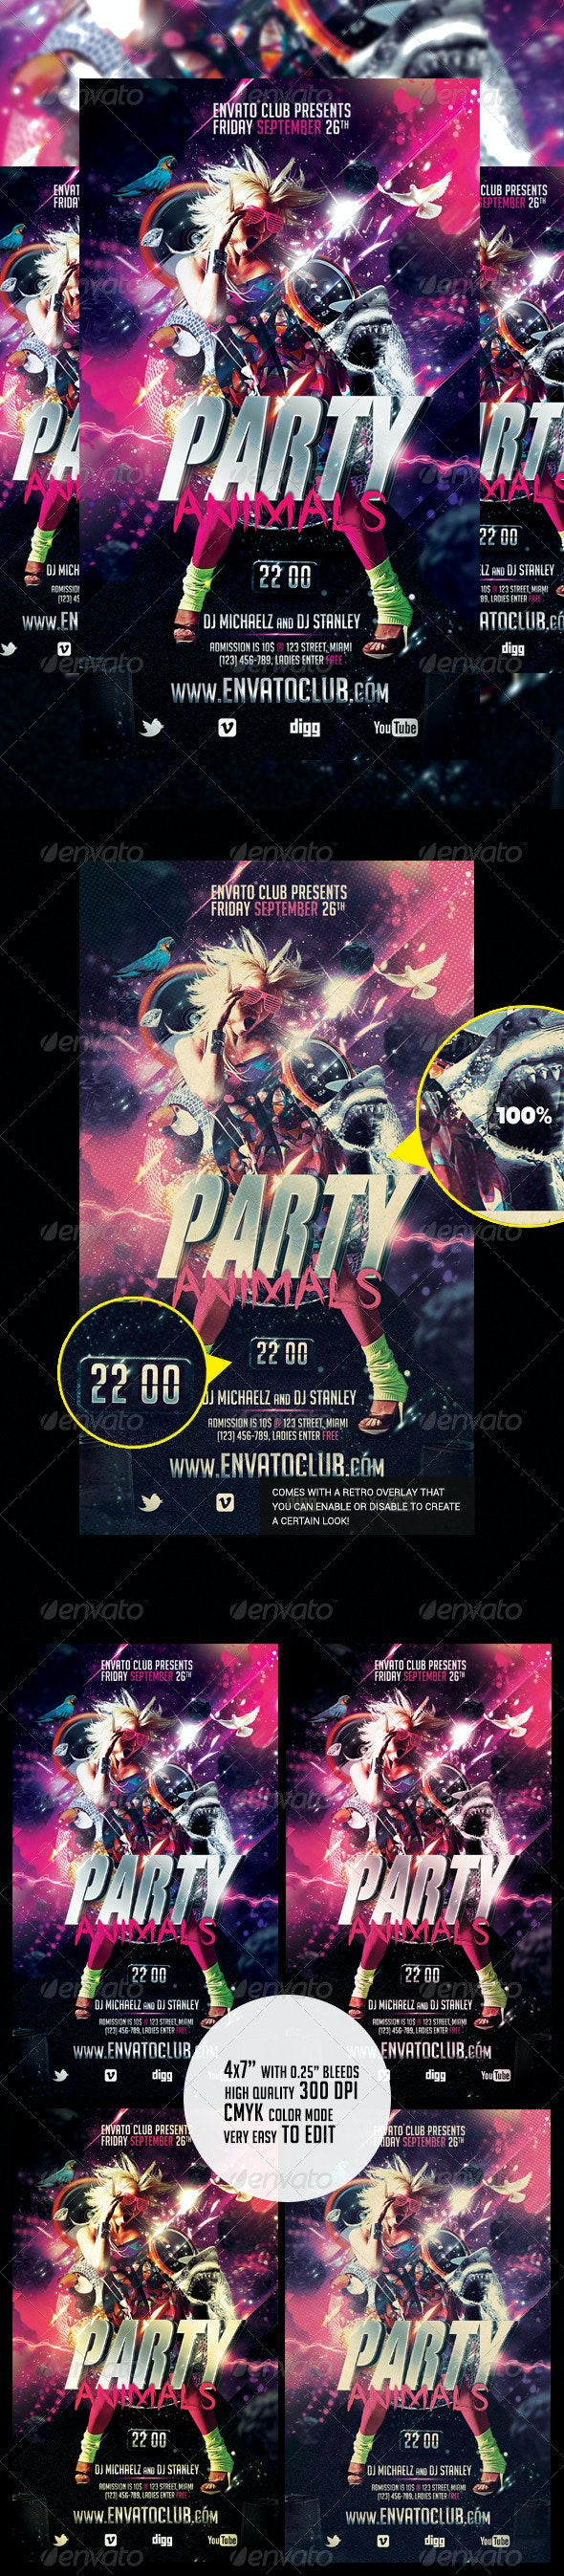 Party Animals Flyer - Clubs & Parties Events